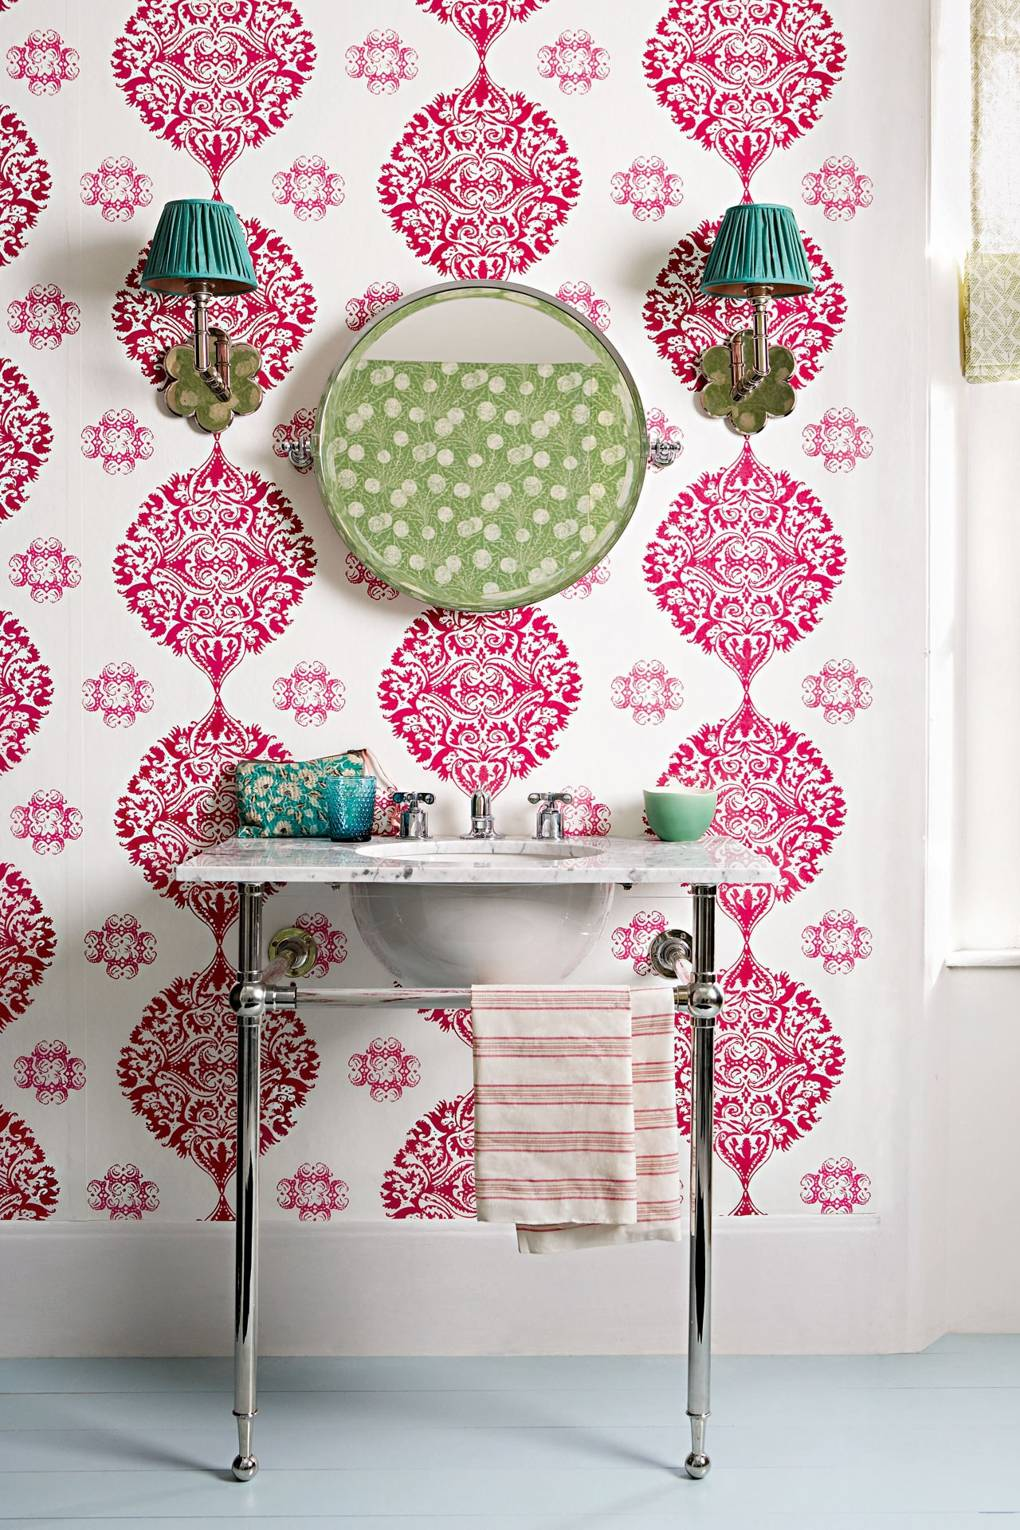 Pattern ideas for decorating | House & Garden